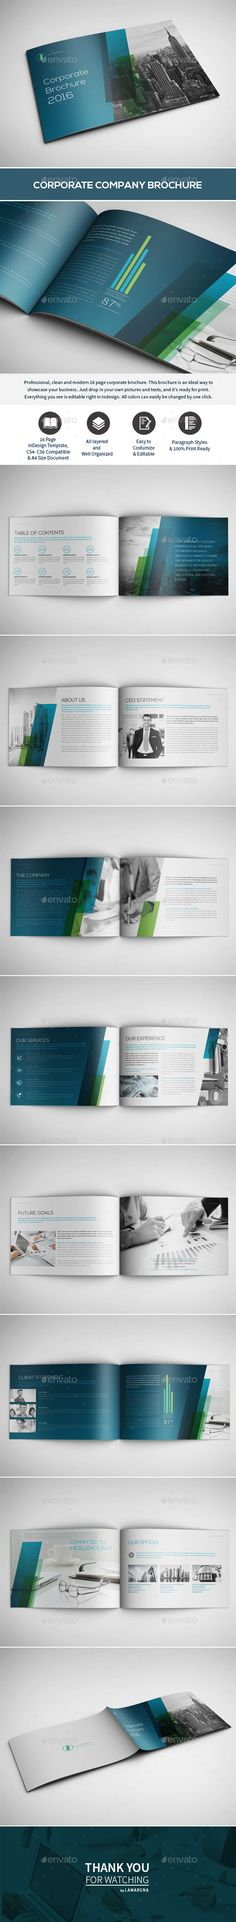 #Corporate Brochure - Corporate Brochures.Download here: http://graphicriver.net/item/corporate-brochure/16547806?ref=arroganttype